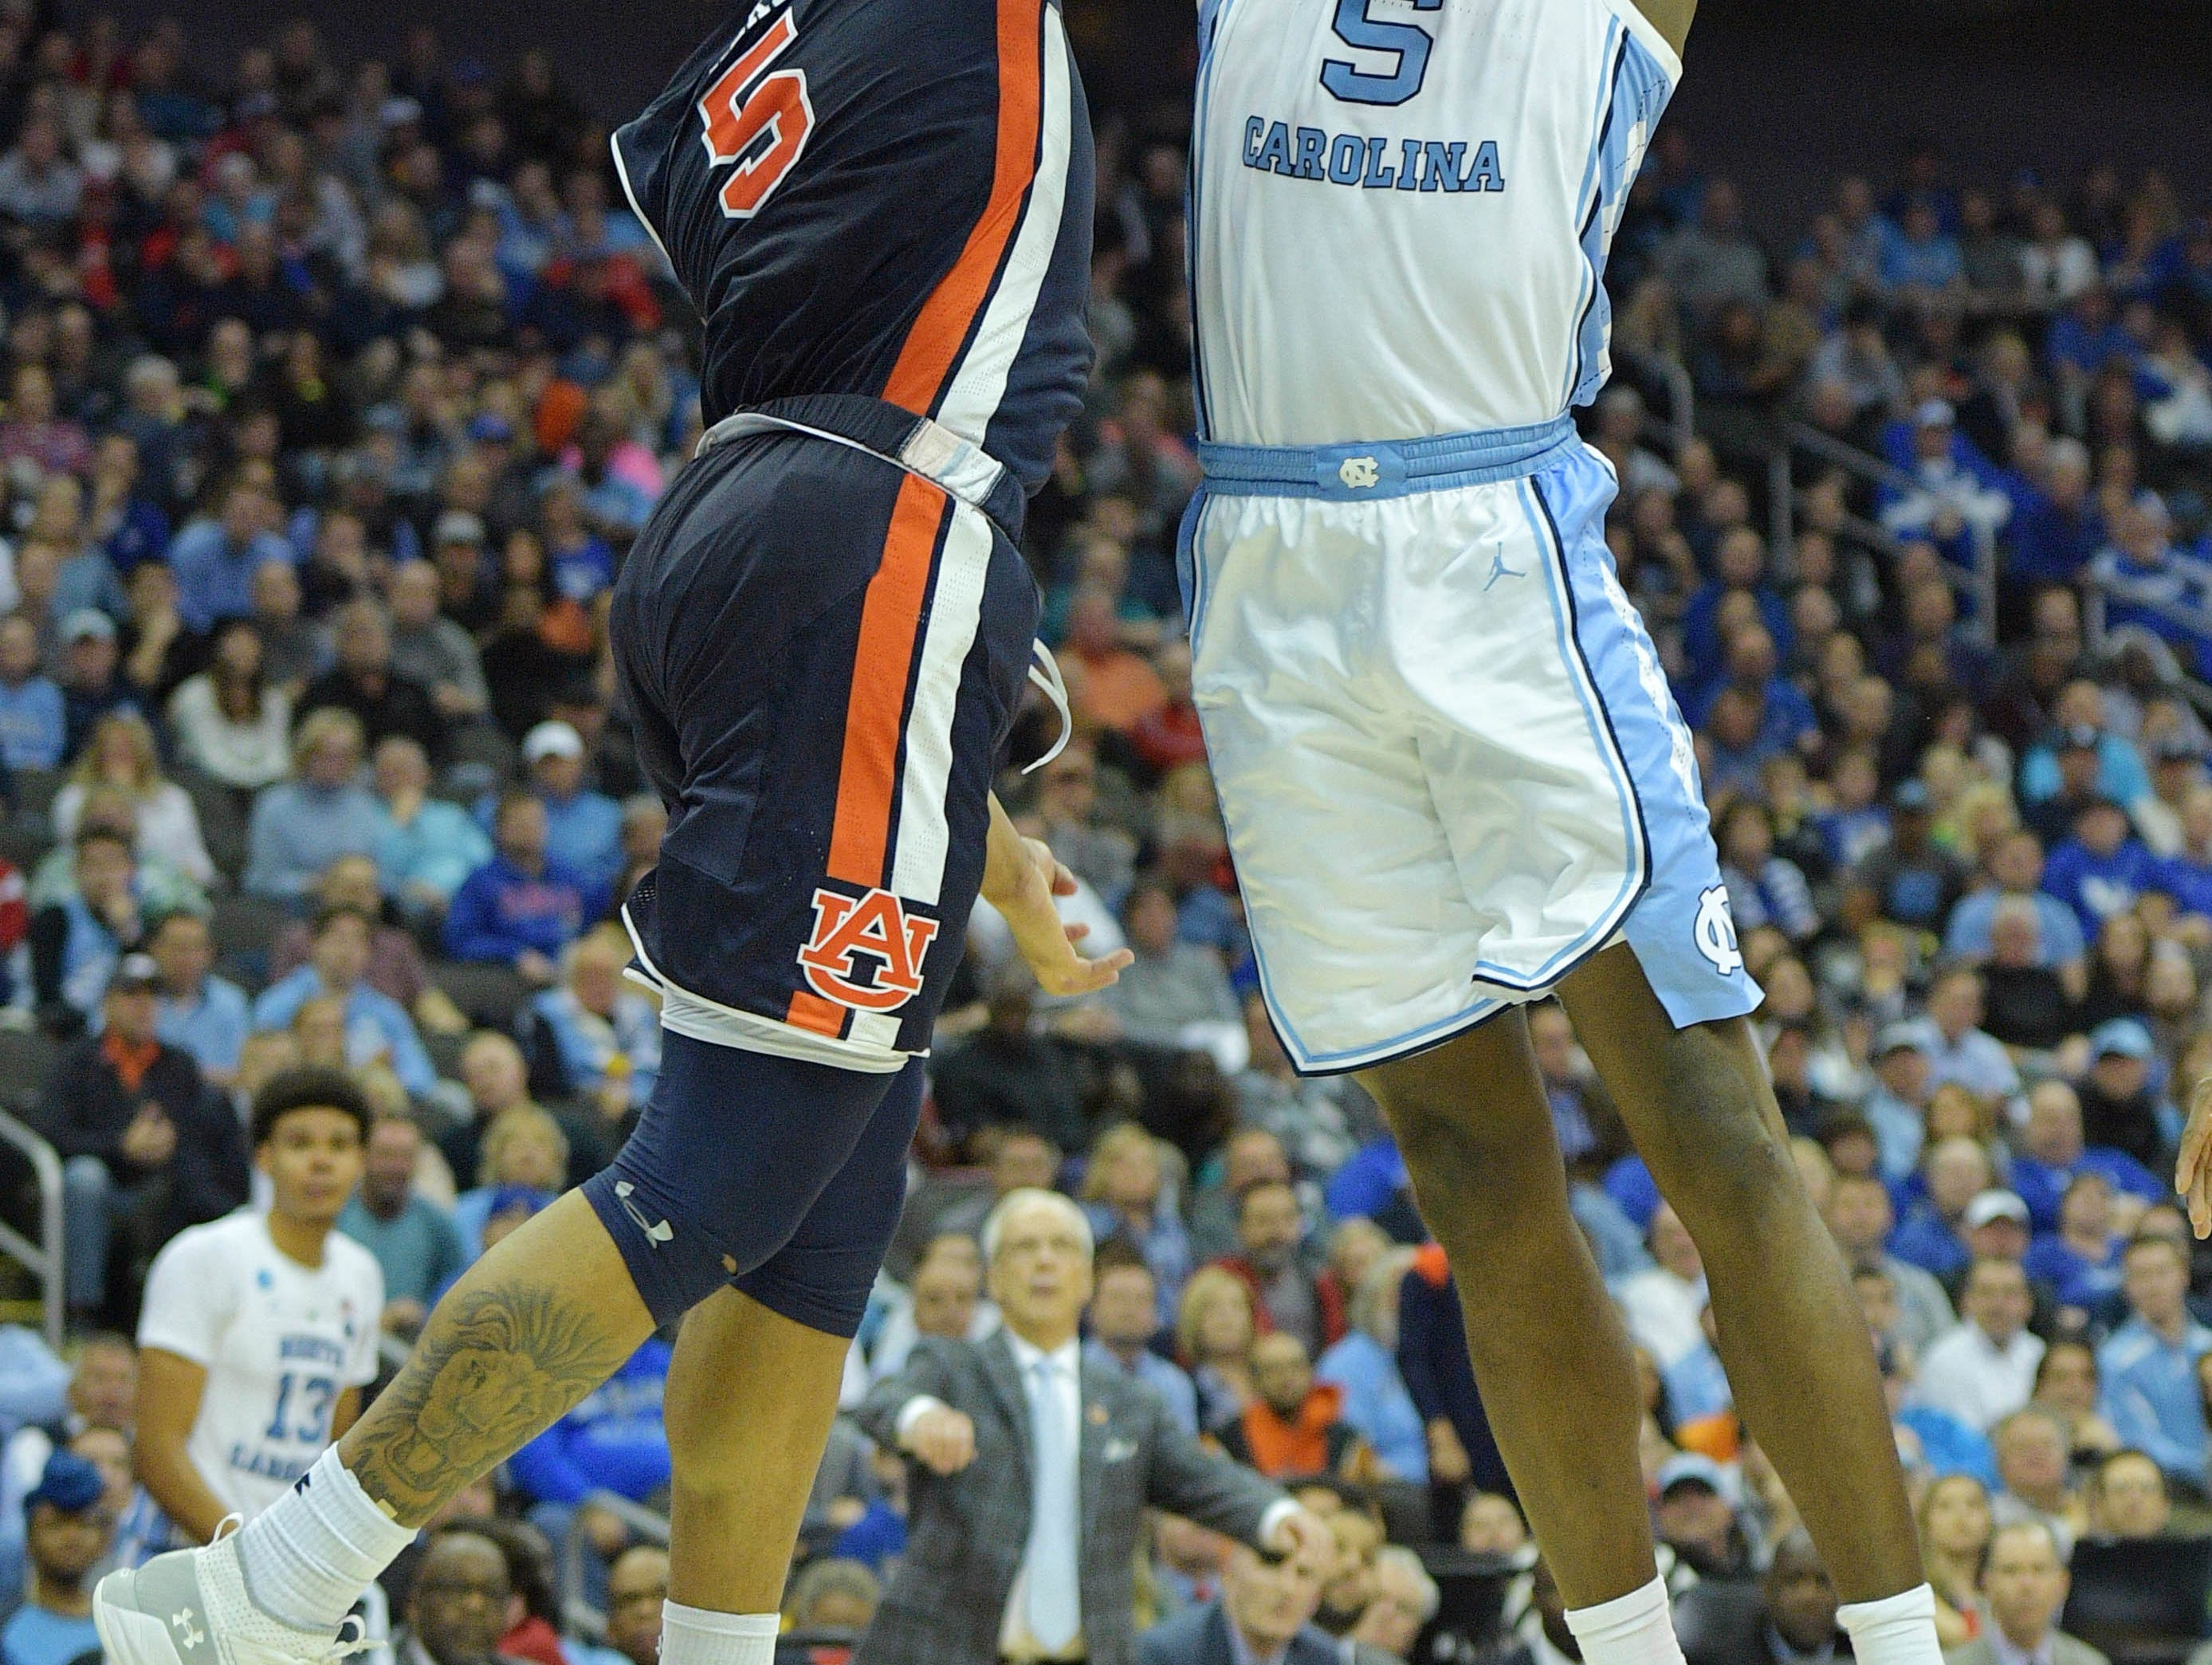 Mar 29, 2019; Kansas City, MO, United States; Auburn Tigers forward Chuma Okeke (left) blocks the shot of North Carolina Tar Heels forward Nassir Little (right) during the second half in the semifinals of the midwest regional of the 2019 NCAA Tournament at Sprint Center. Mandatory Credit: Denny Medley-USA TODAY Sports